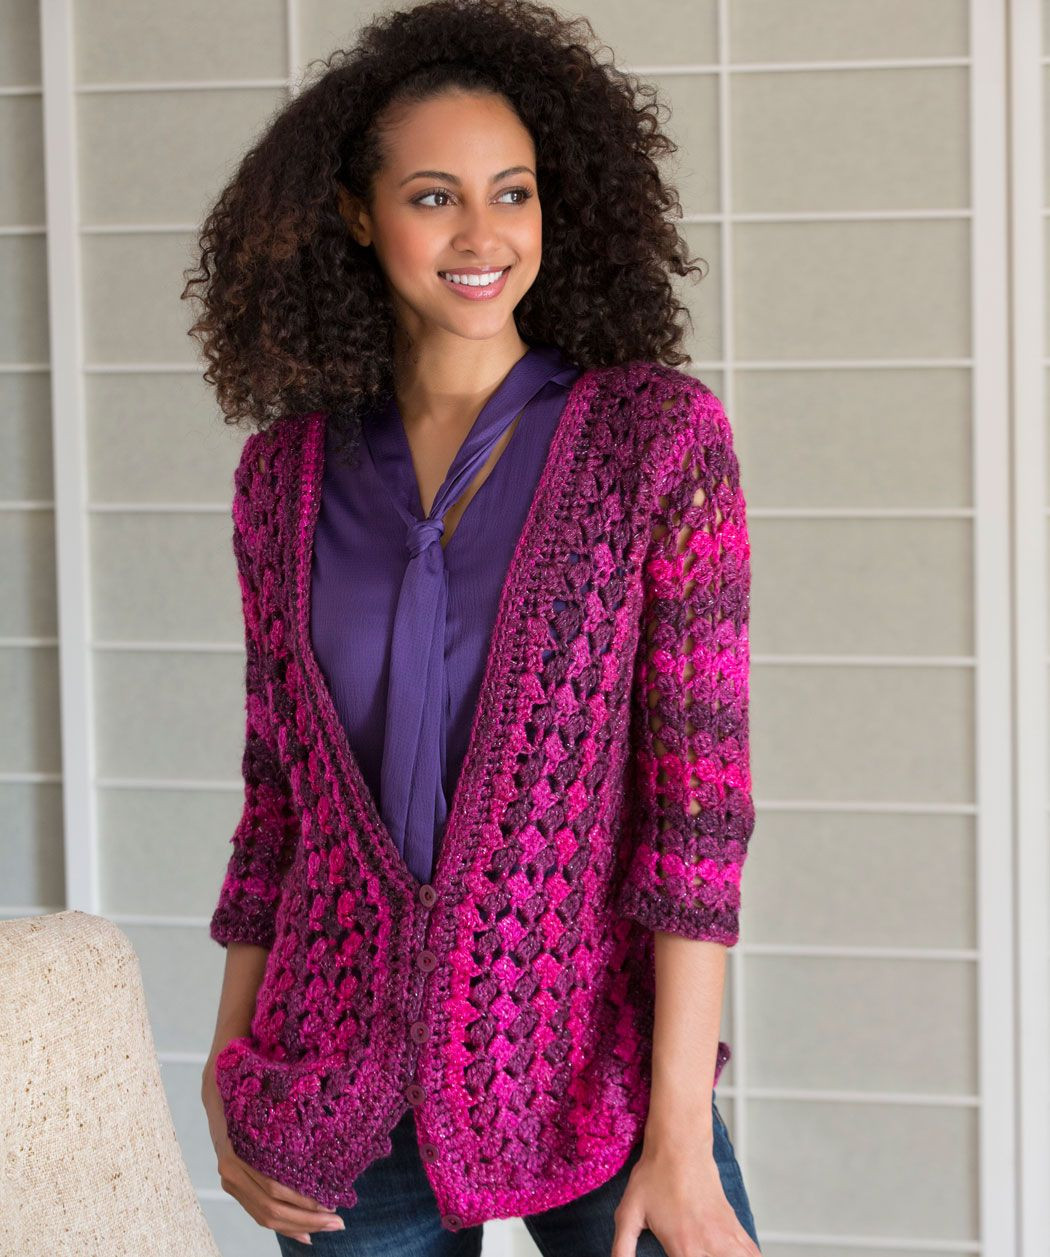 Fresh Lacy Cardigan Crochet Pattern Red Heart Sweater Of Lovely 32 Ideas Red Heart Sweater